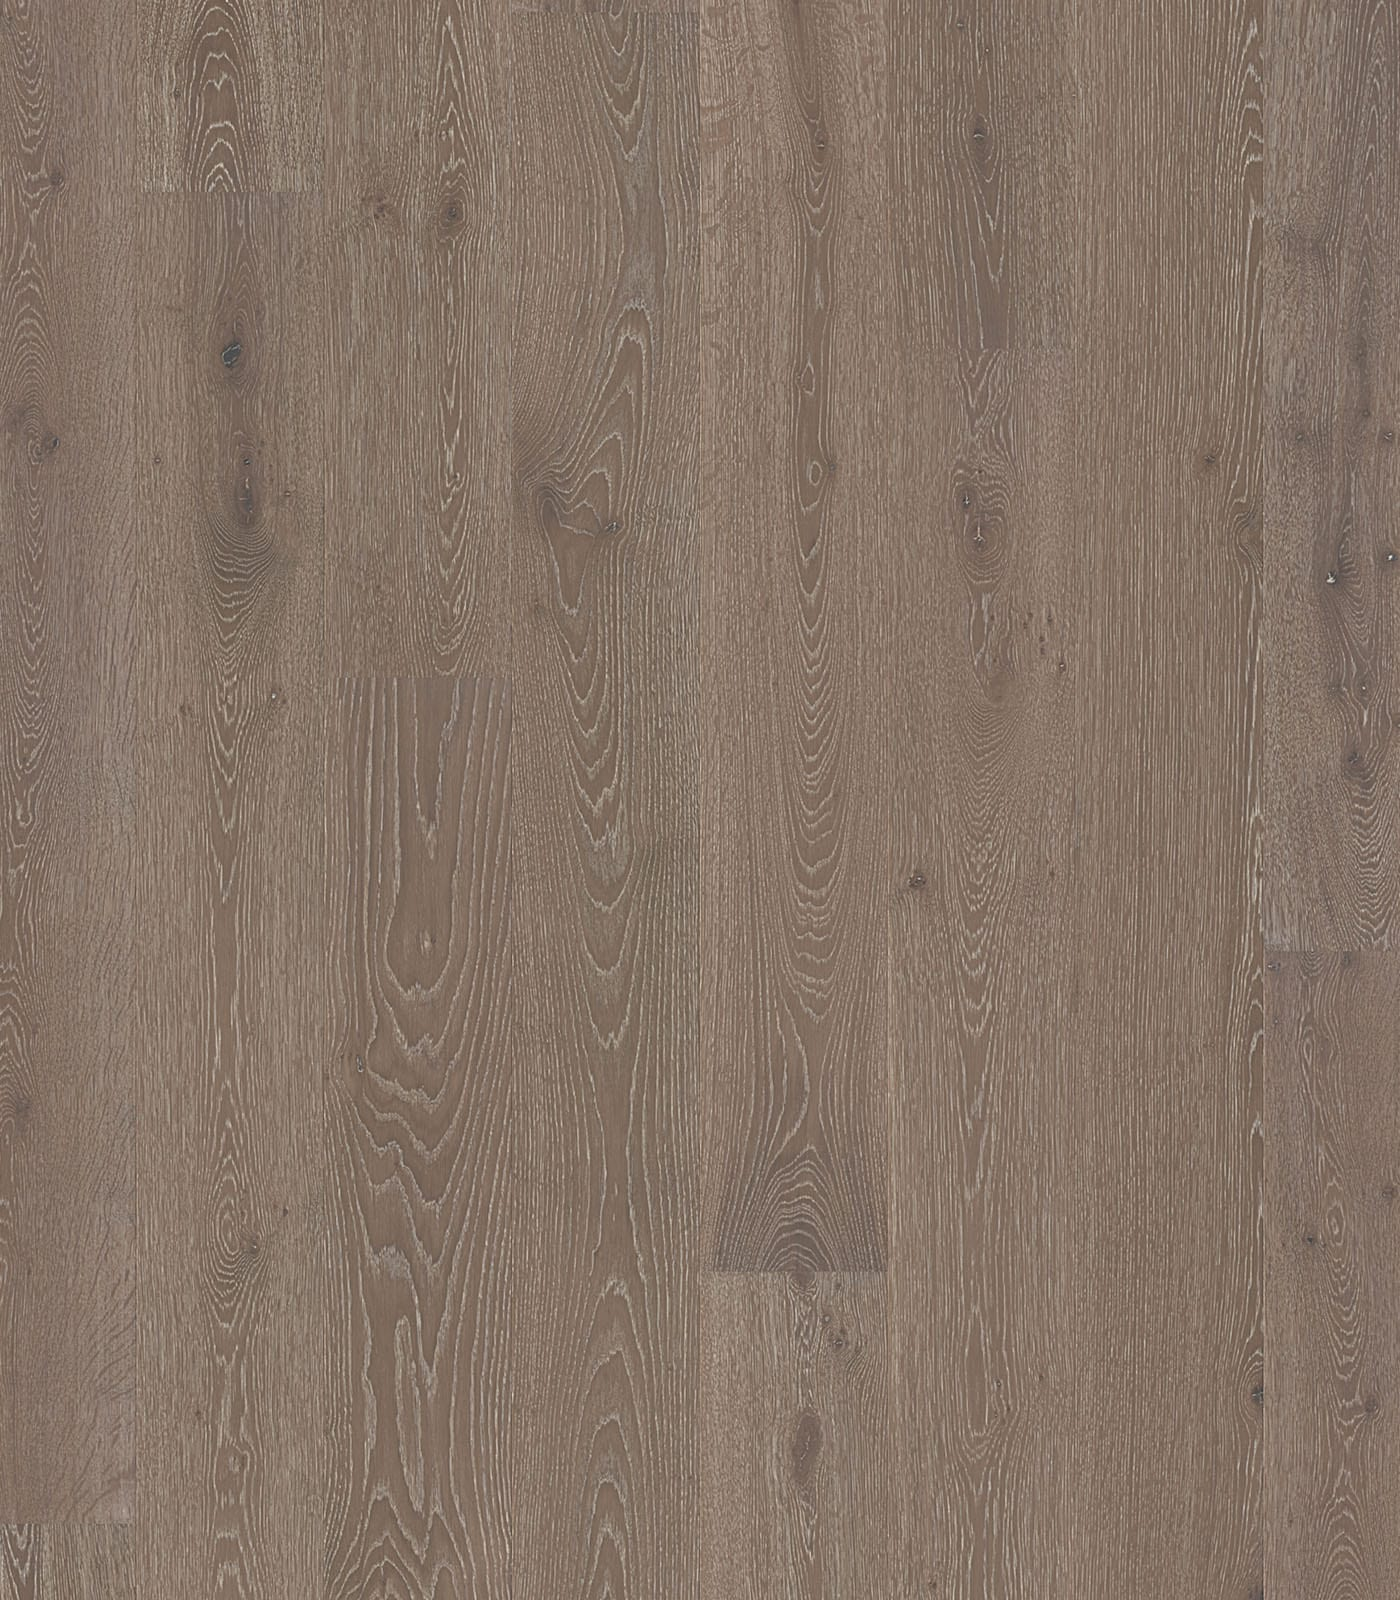 Hawaii-European engineered Oak floors